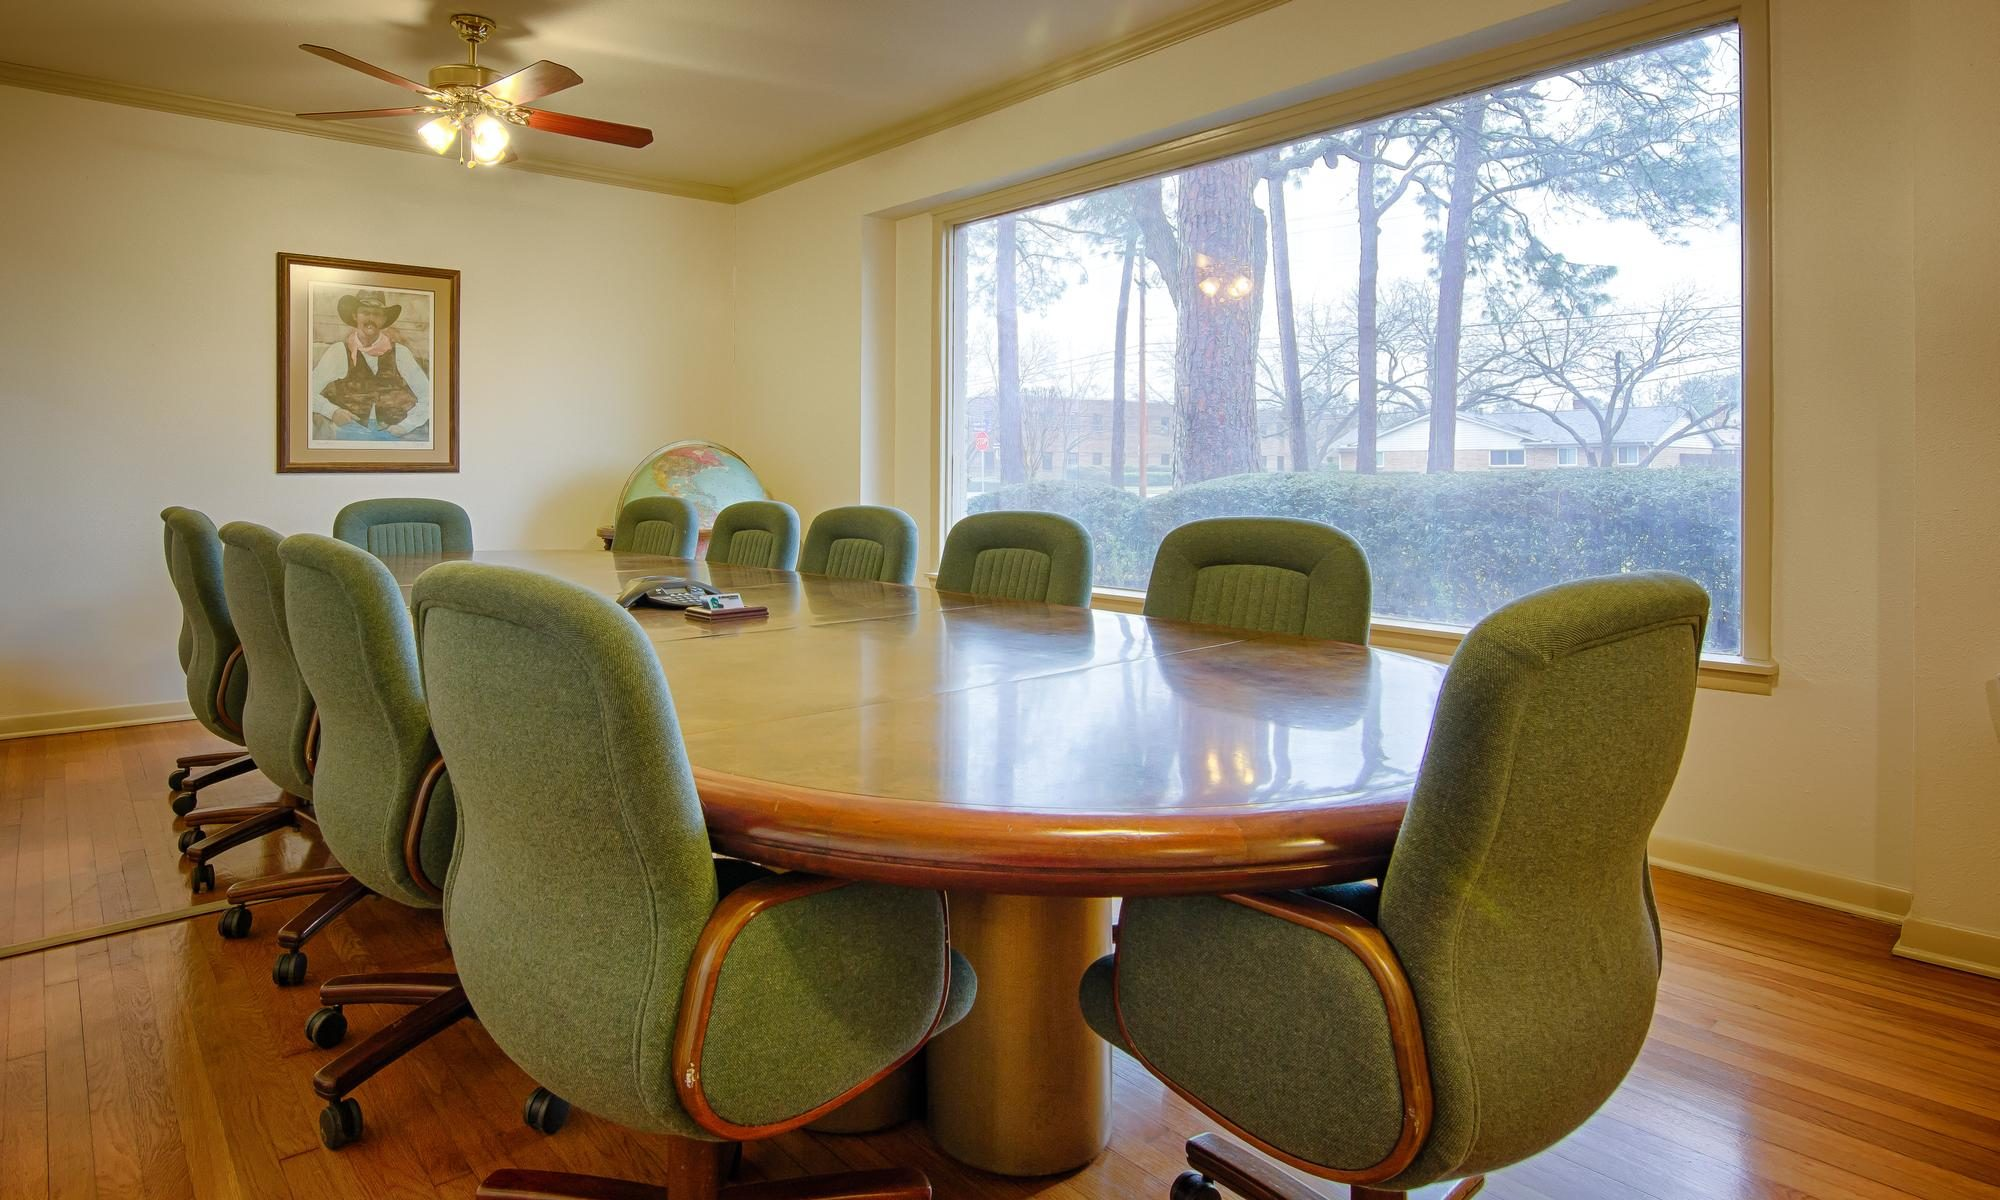 W Michael Greene office conference room